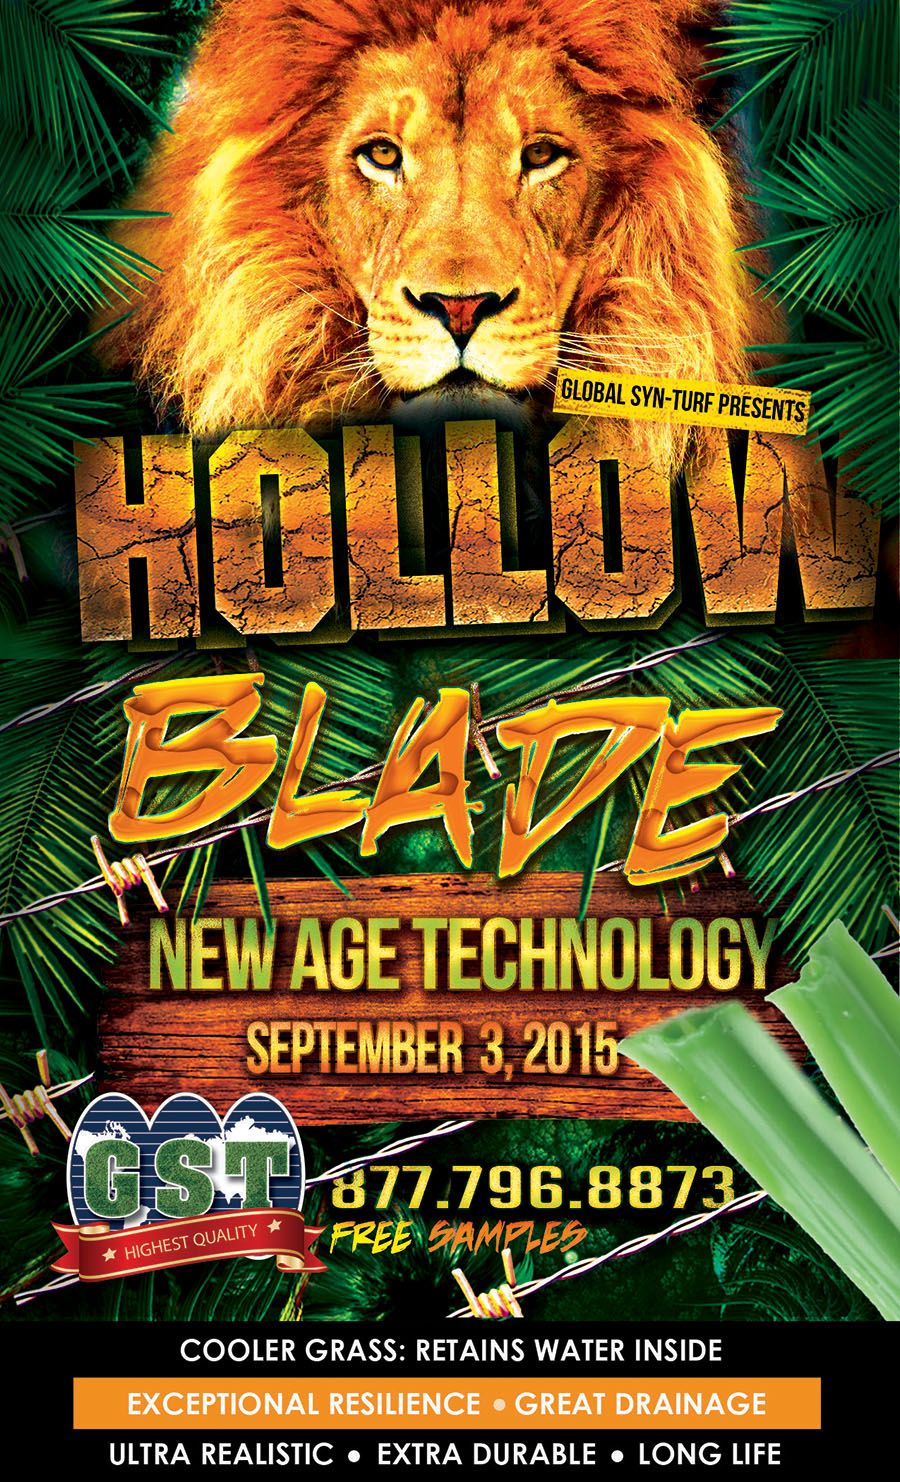 fakegrass Hollow Blade Has Arrived! Artificial Grass That Keeps Moisture Inside To Stabilize the Temperature of the Lawn